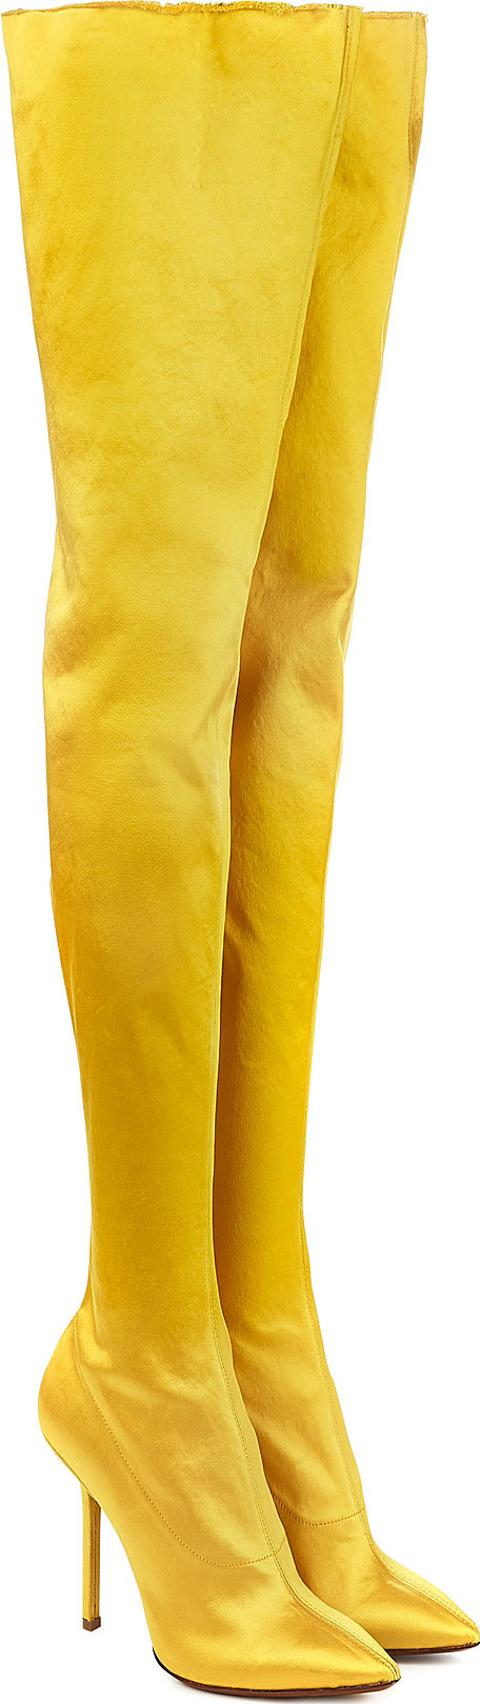 9c6f4fe791f vetements Thigh High Satin Boots